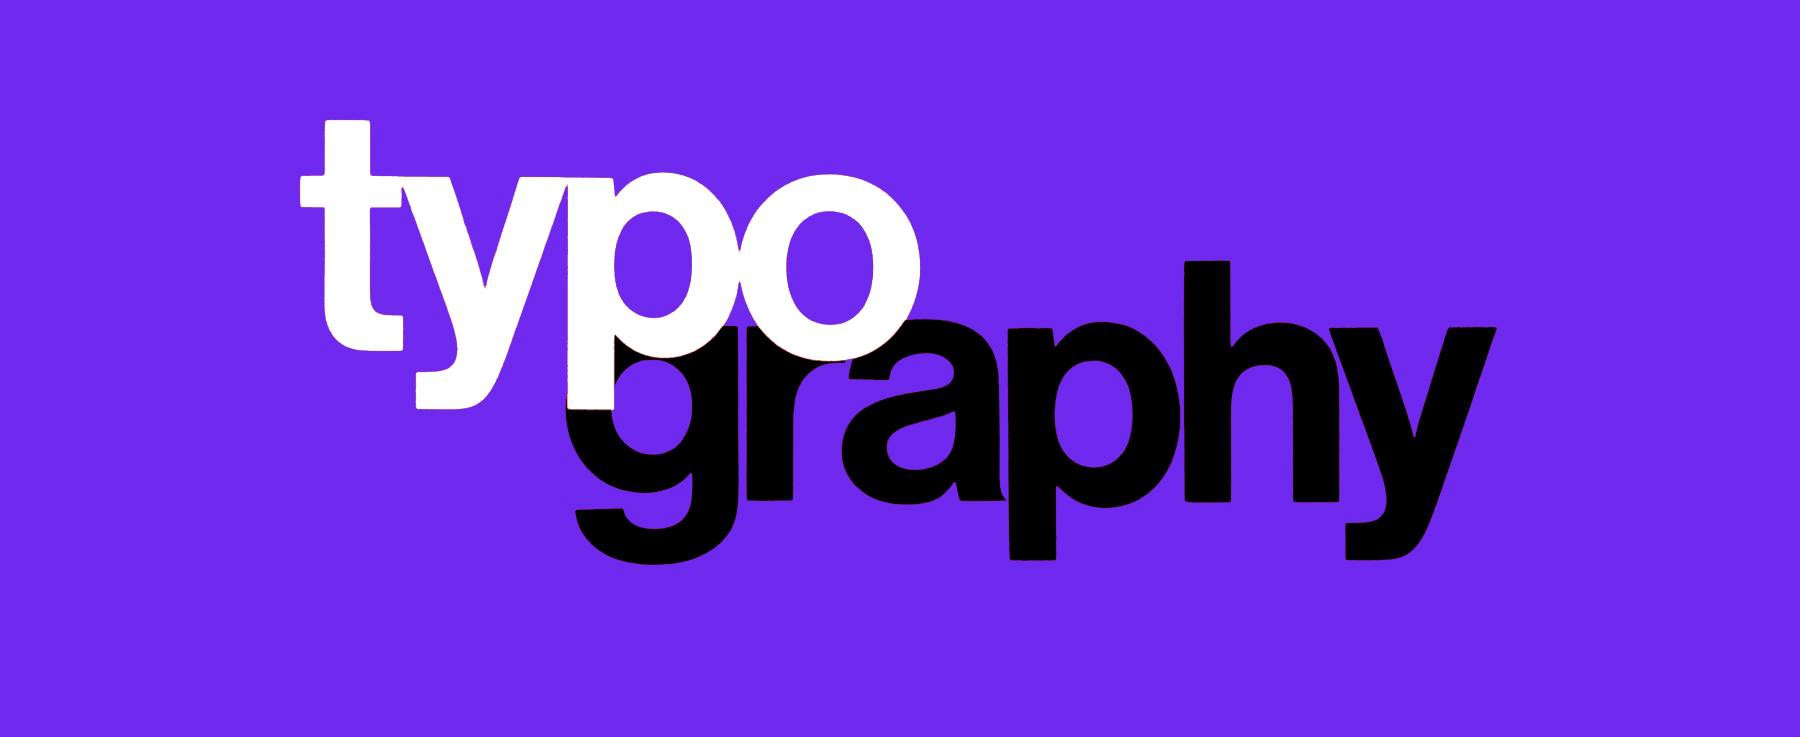 Getting Typography Right in Digital Design